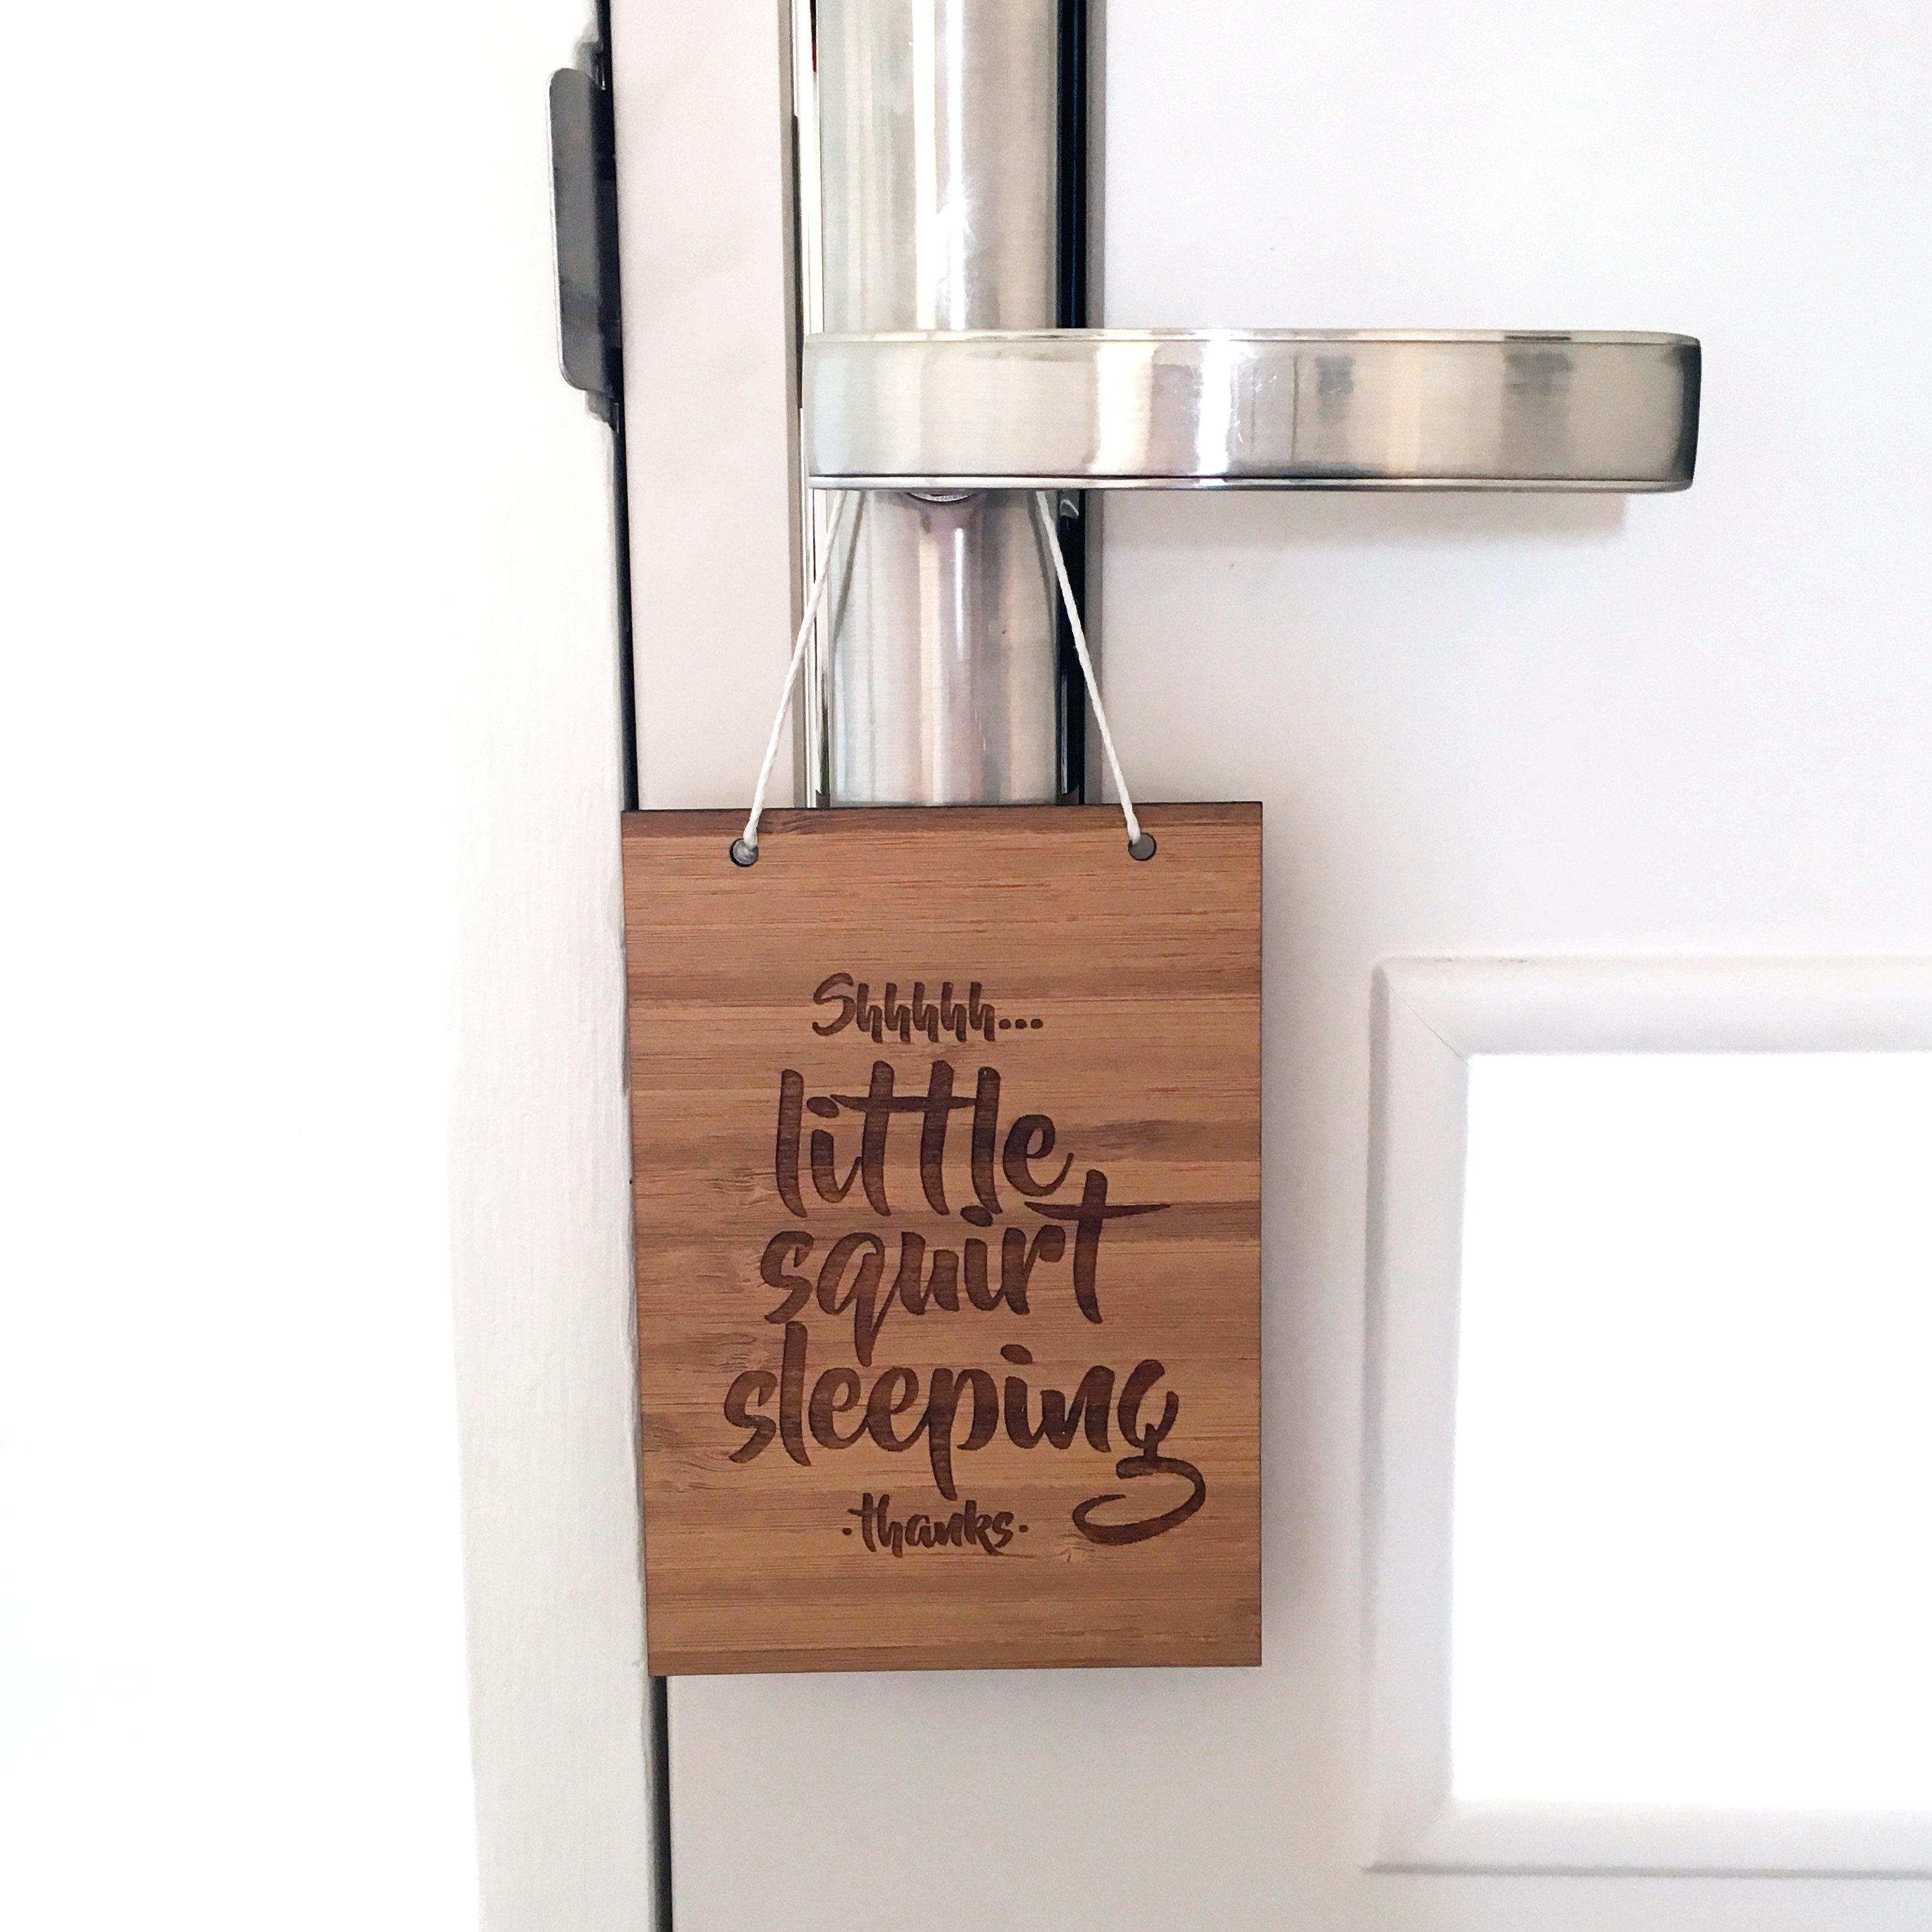 Alma Custom Designs | Little Squirt Sleeping Door Hanger $22 | www.nestlingcollective.com